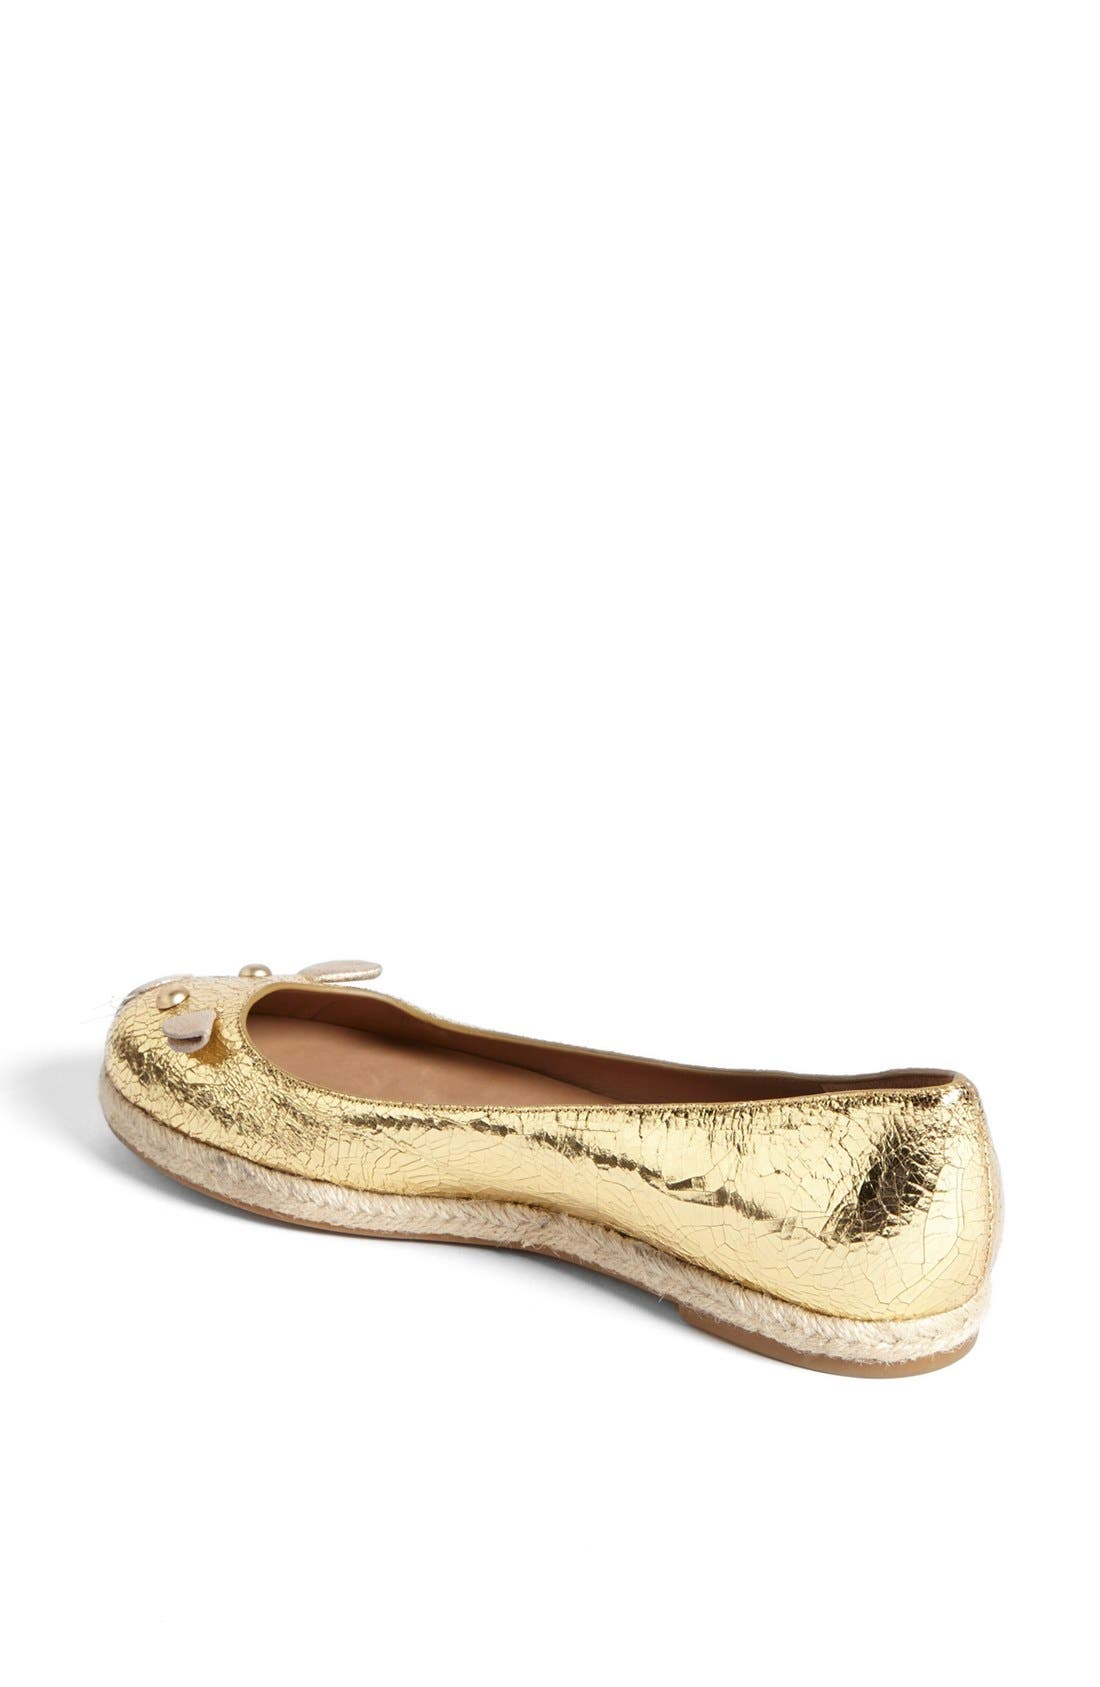 Alternate Image 2  - MARC BY MARC JACOBS 'Mouse' Metallic Calfskin Leather Espadrille Flat